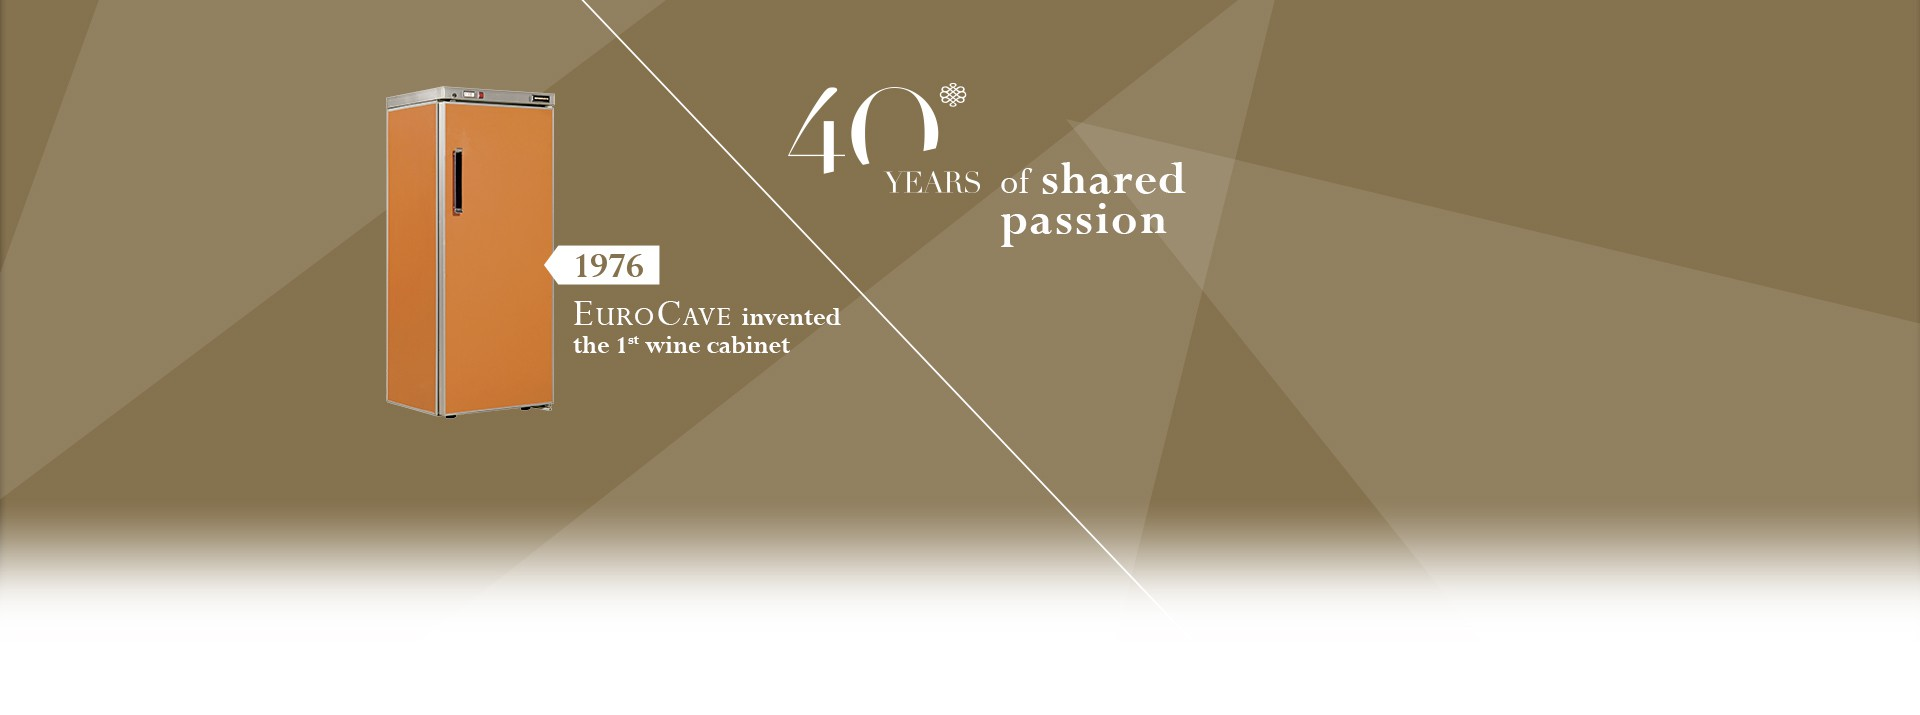 [image] In 2016, EuroCave celebrates 40 years of shared passion with you... And we deeply thank you for that!